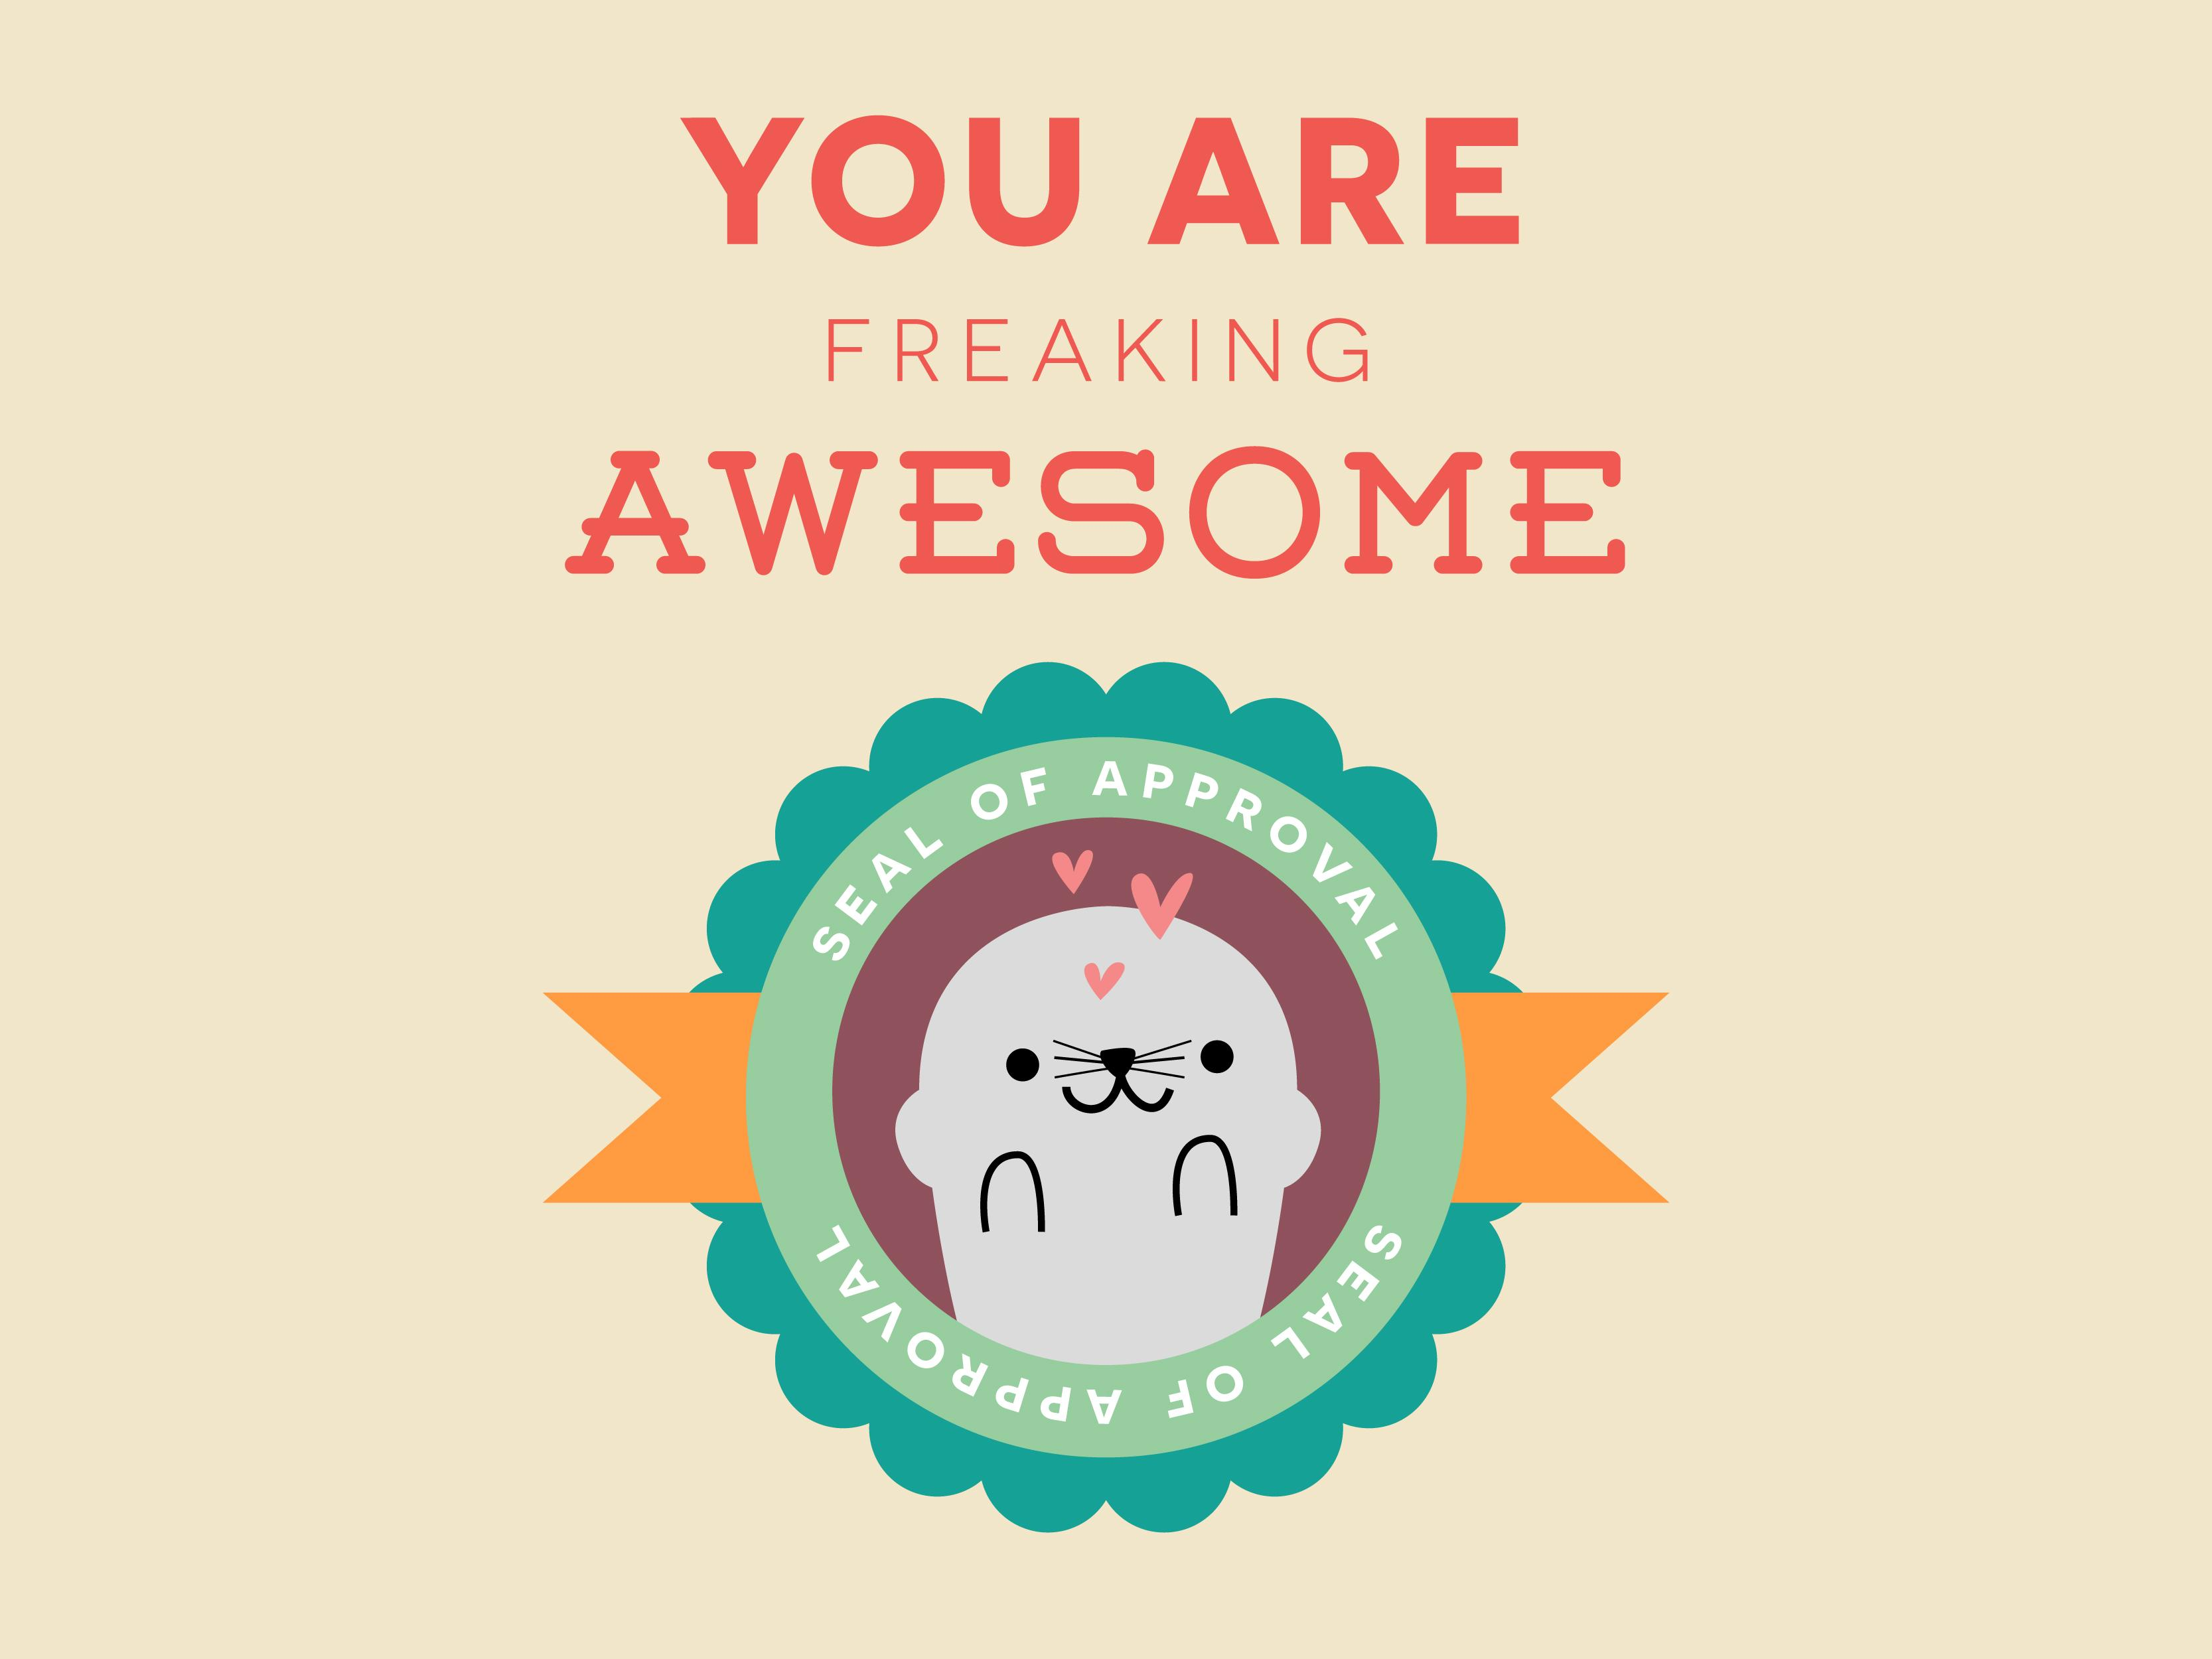 You Are Freaking Awesome - image 1 - student project